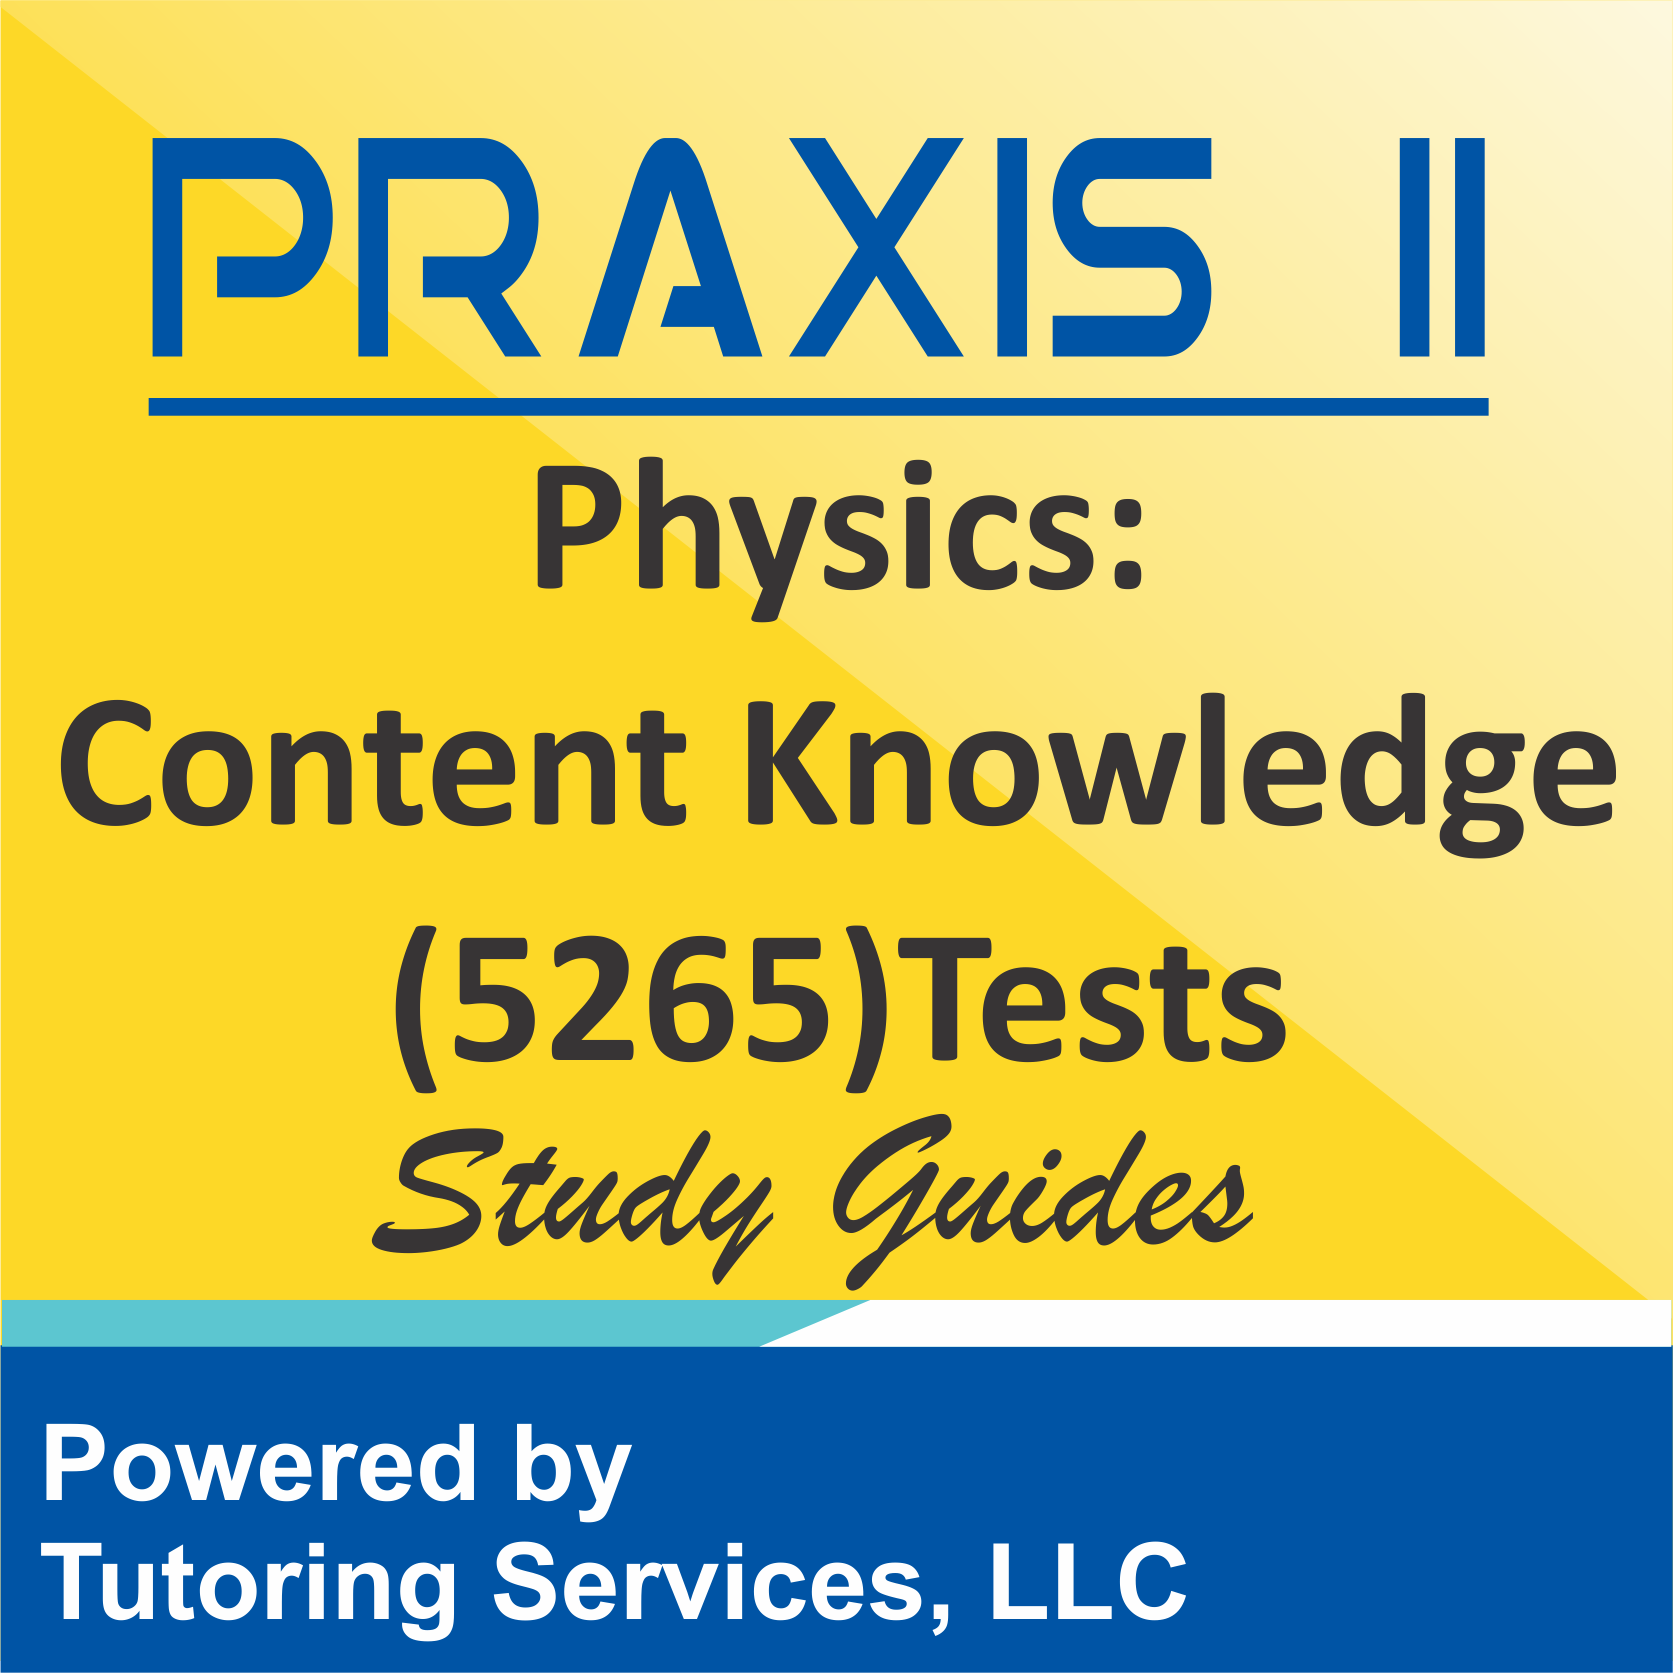 Praxis II Physics: Content Knowledge (5265) Test Guidelines